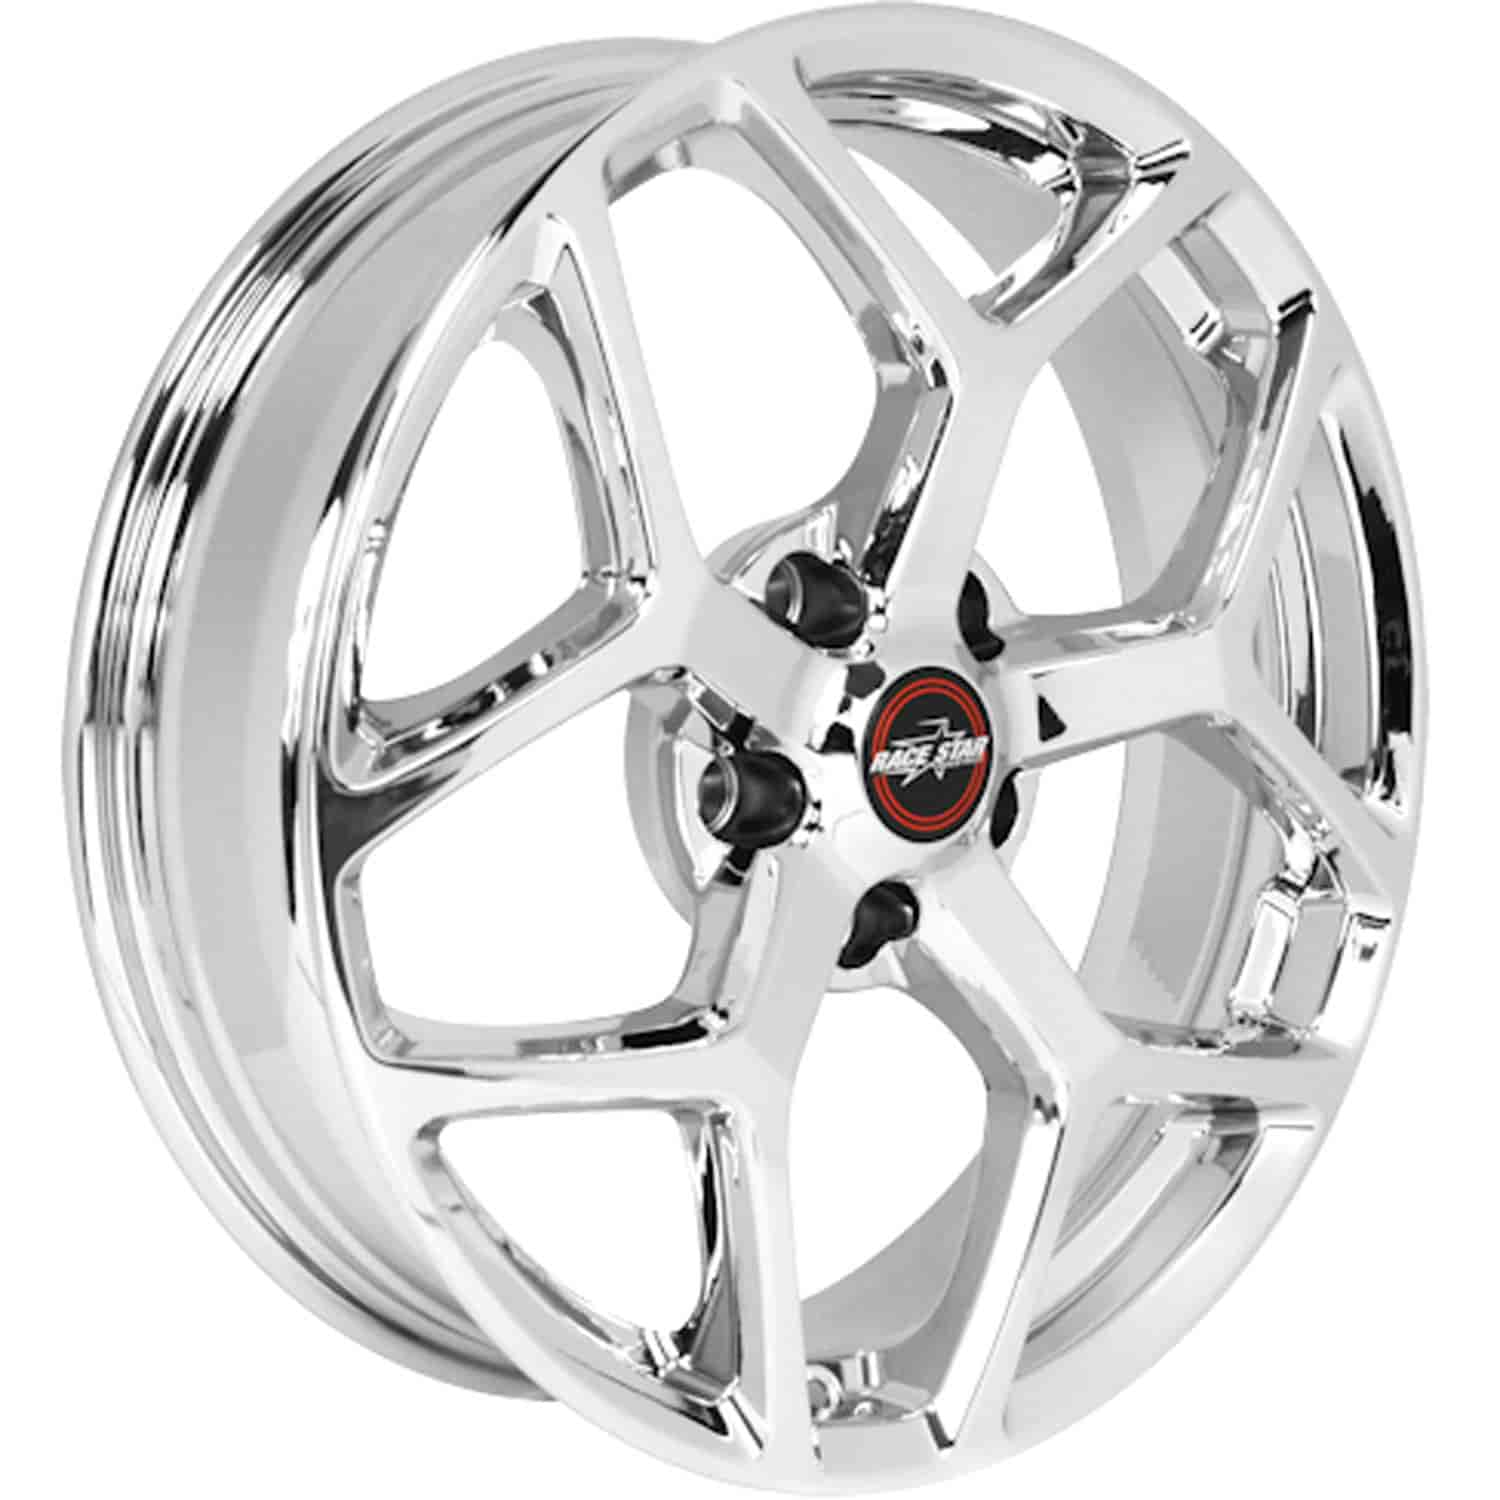 Race Star Wheels 95-850445C